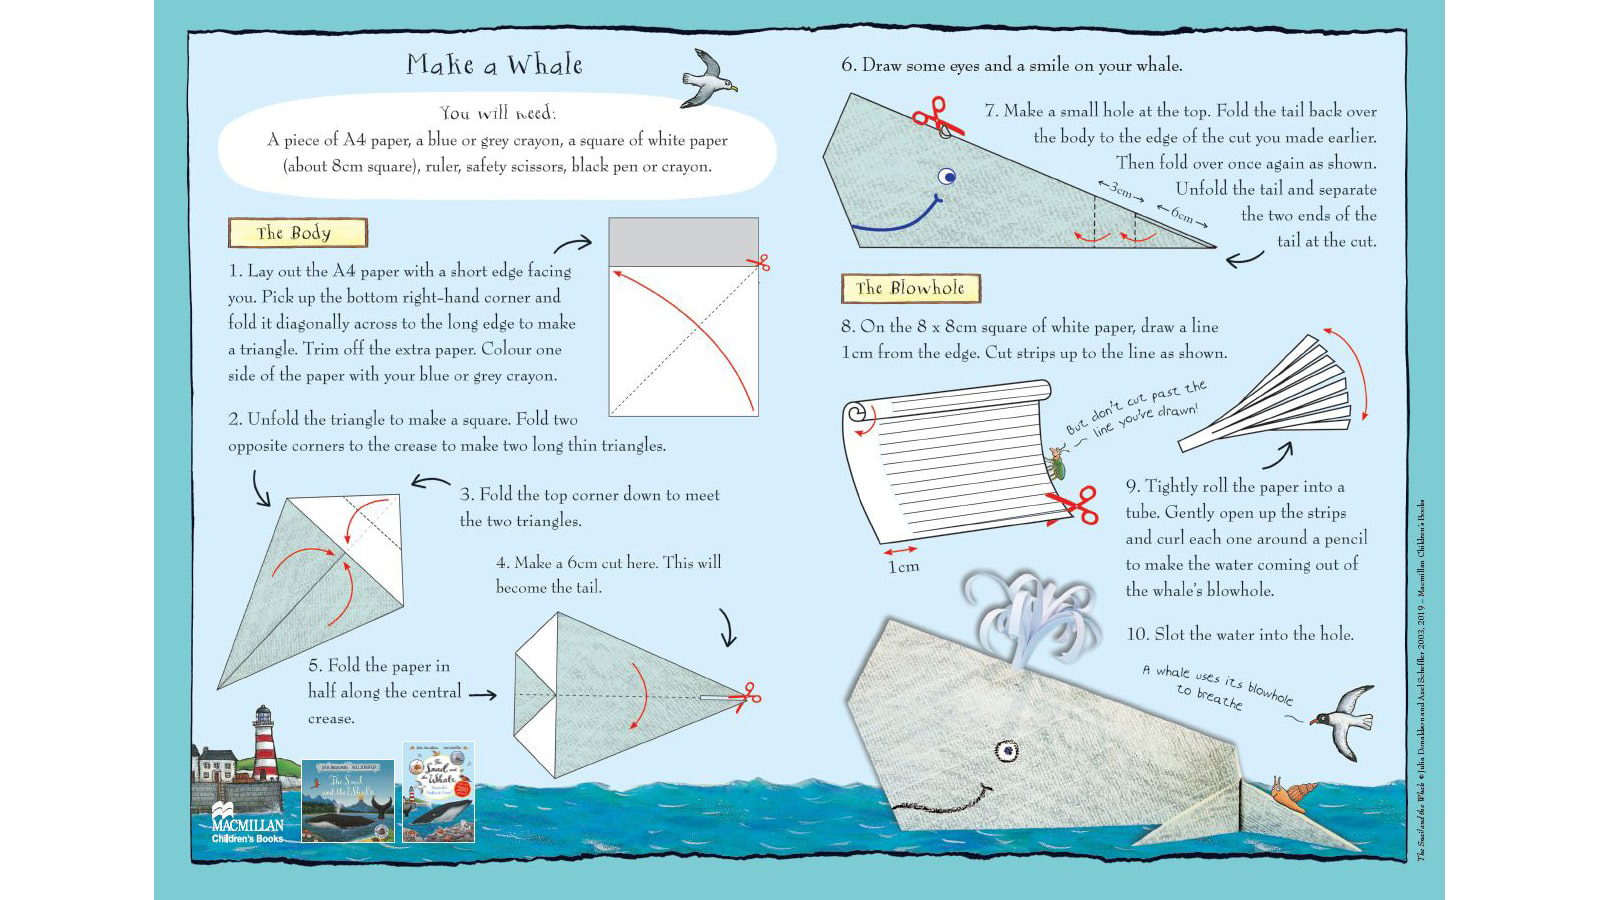 Make-a-whale-activity-sheet